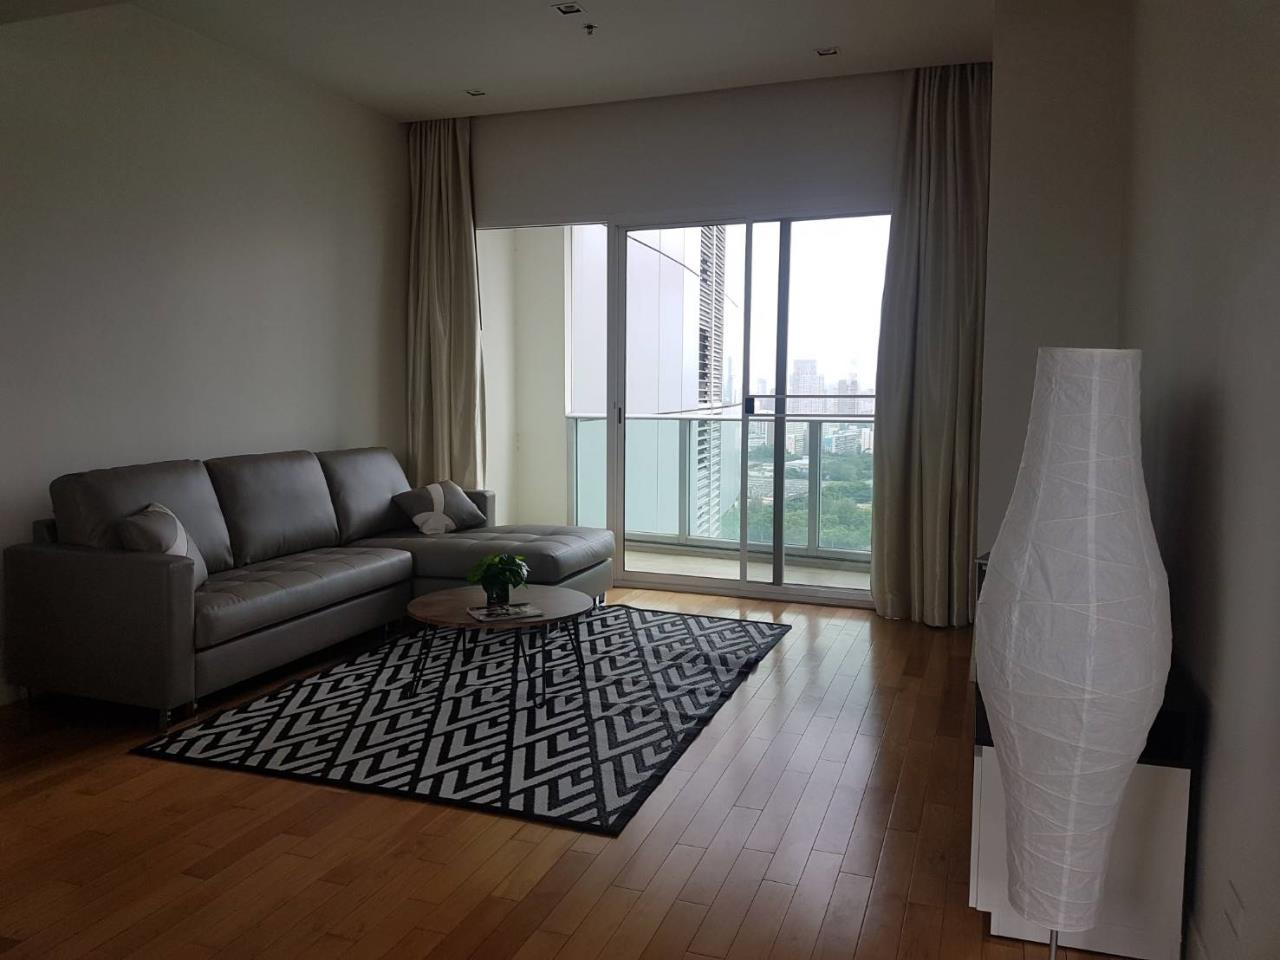 RE/MAX All Star Realty Agency's Millennium Residence for sale/rent (BTS Asoke) 11